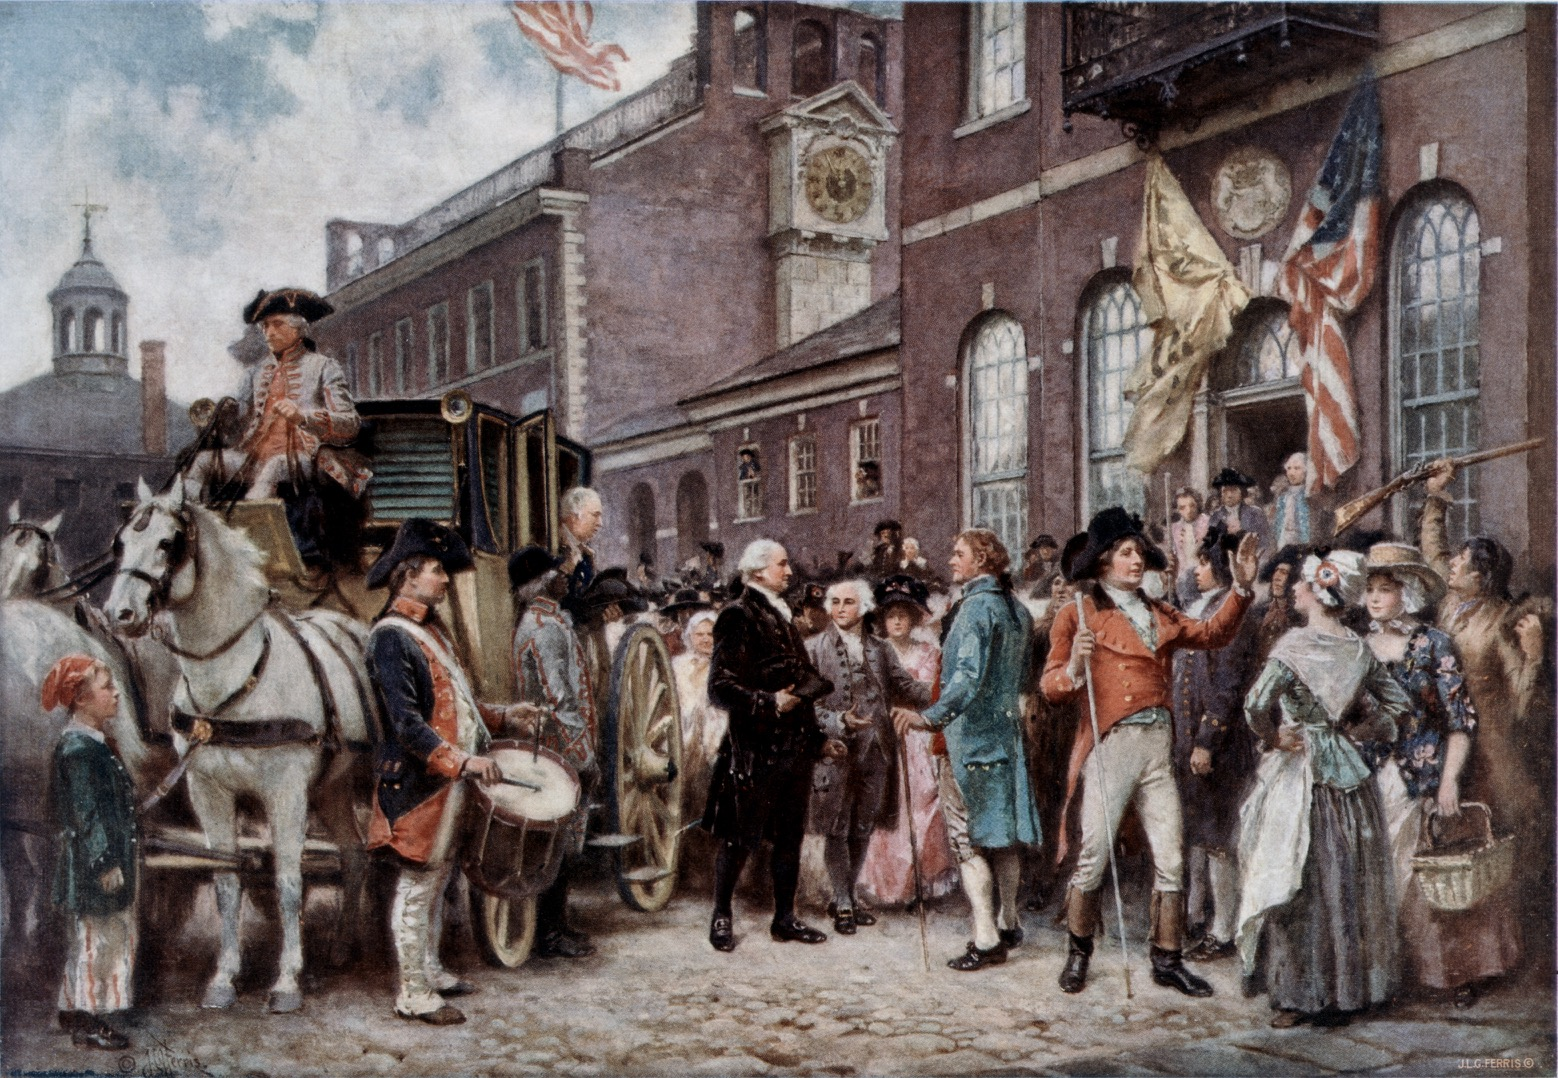 Washington's second inauguration at Philadelphia, by Jean Leon Gerome Ferris (1863-1930)